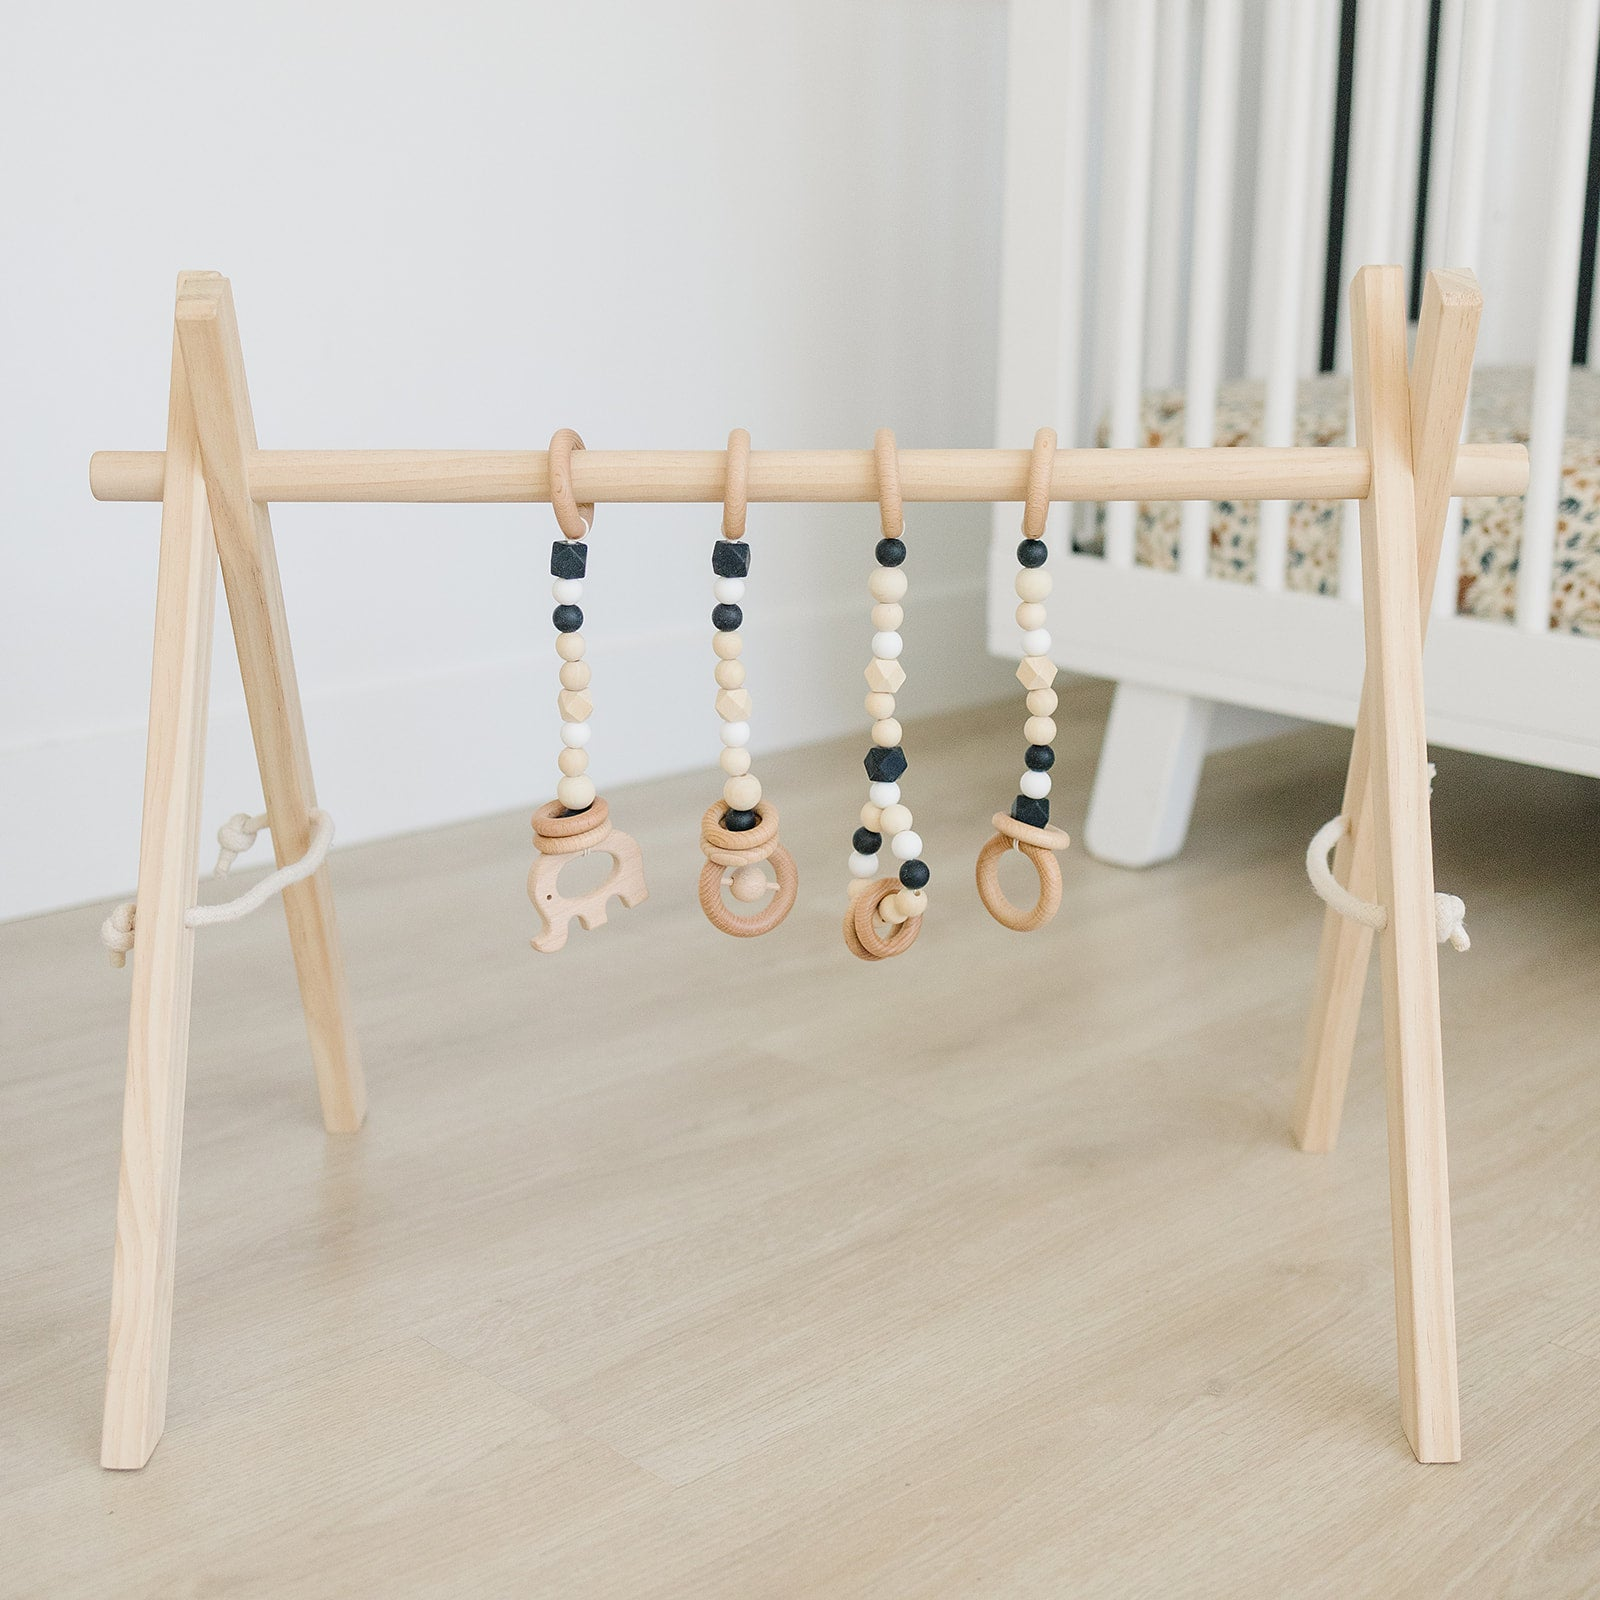 Wooden Baby Gym + Black Toys BABYLIST